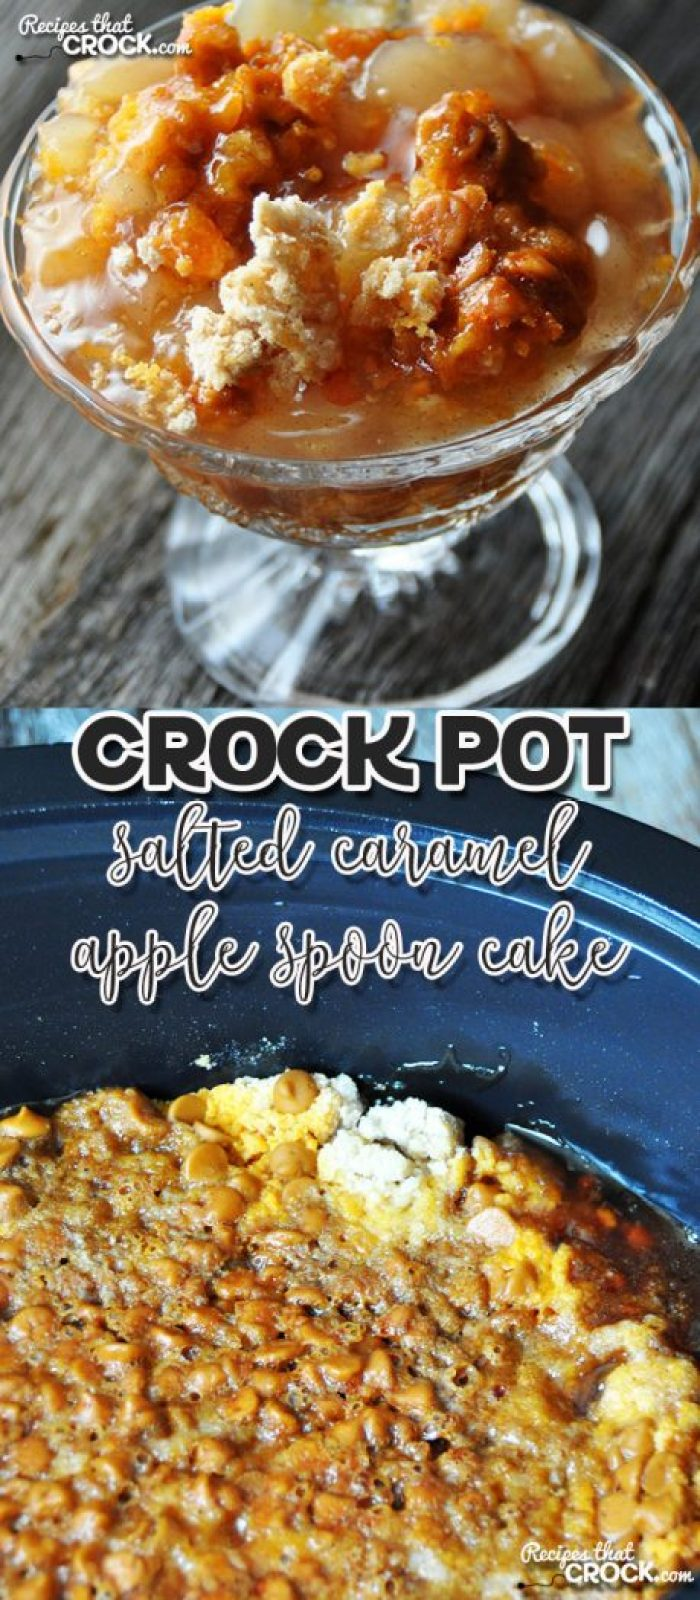 Salted caramel and apple were two flavors that were made for each other, so I couldn't help but make a Crock Pot Salted Caramel Apple Spoon Cake!